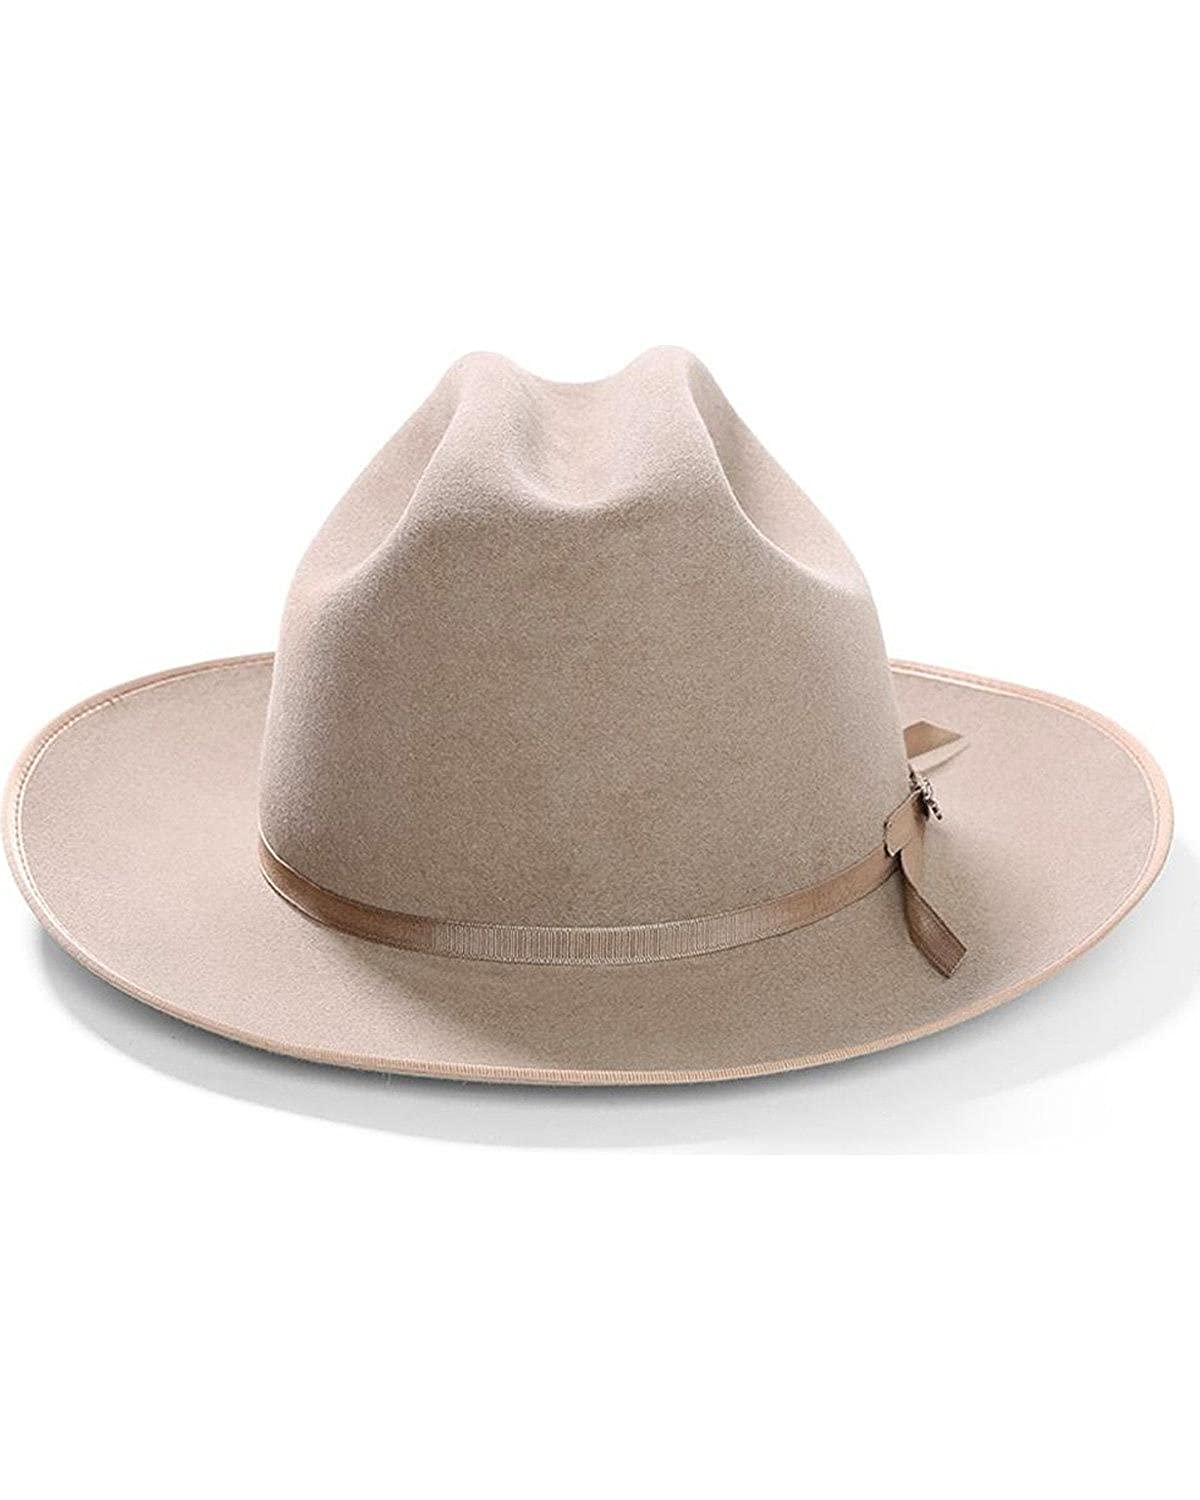 9cbac19308a3a Stetson Royal DeLuxe Open Road Hat at Amazon Men s Clothing store